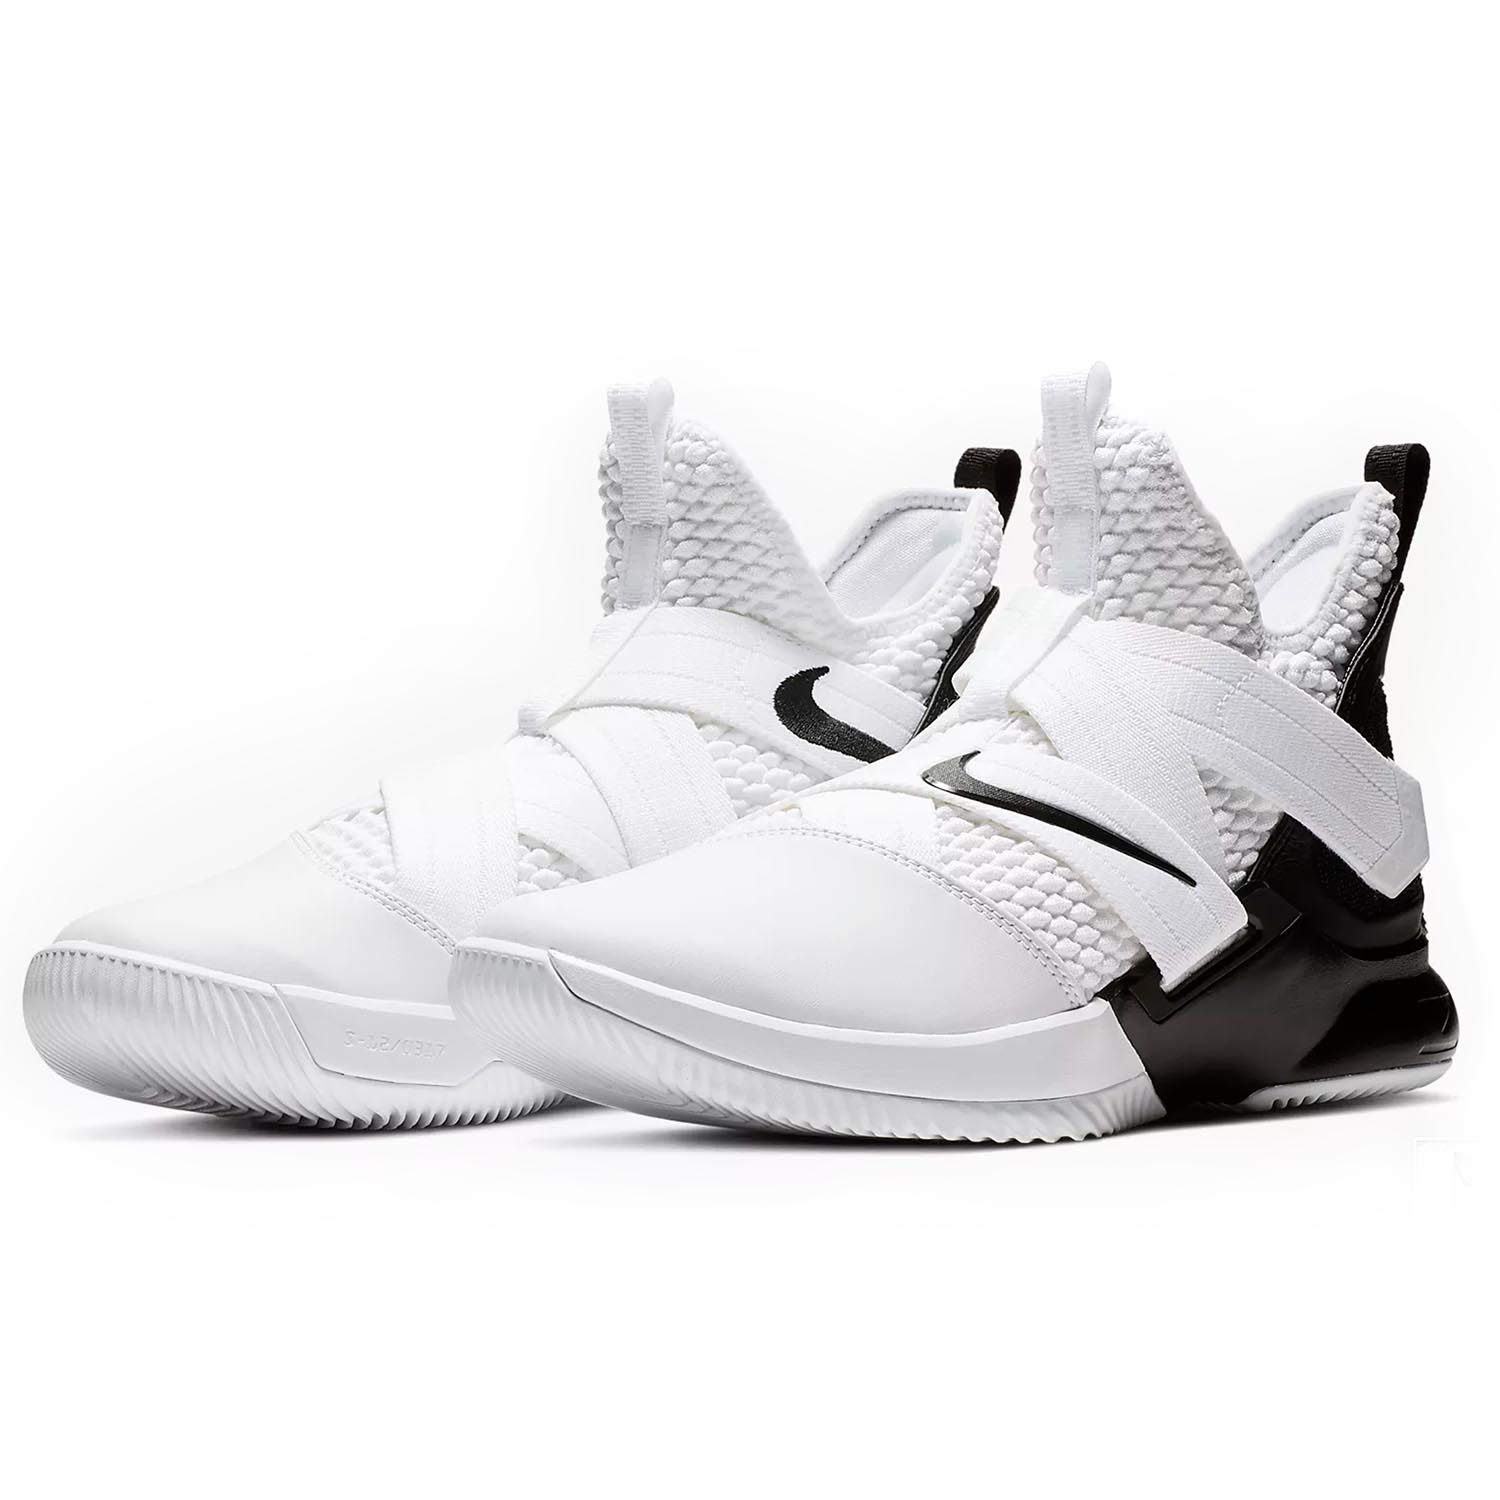 Nike Mens Lebron Soldier XII Basketball